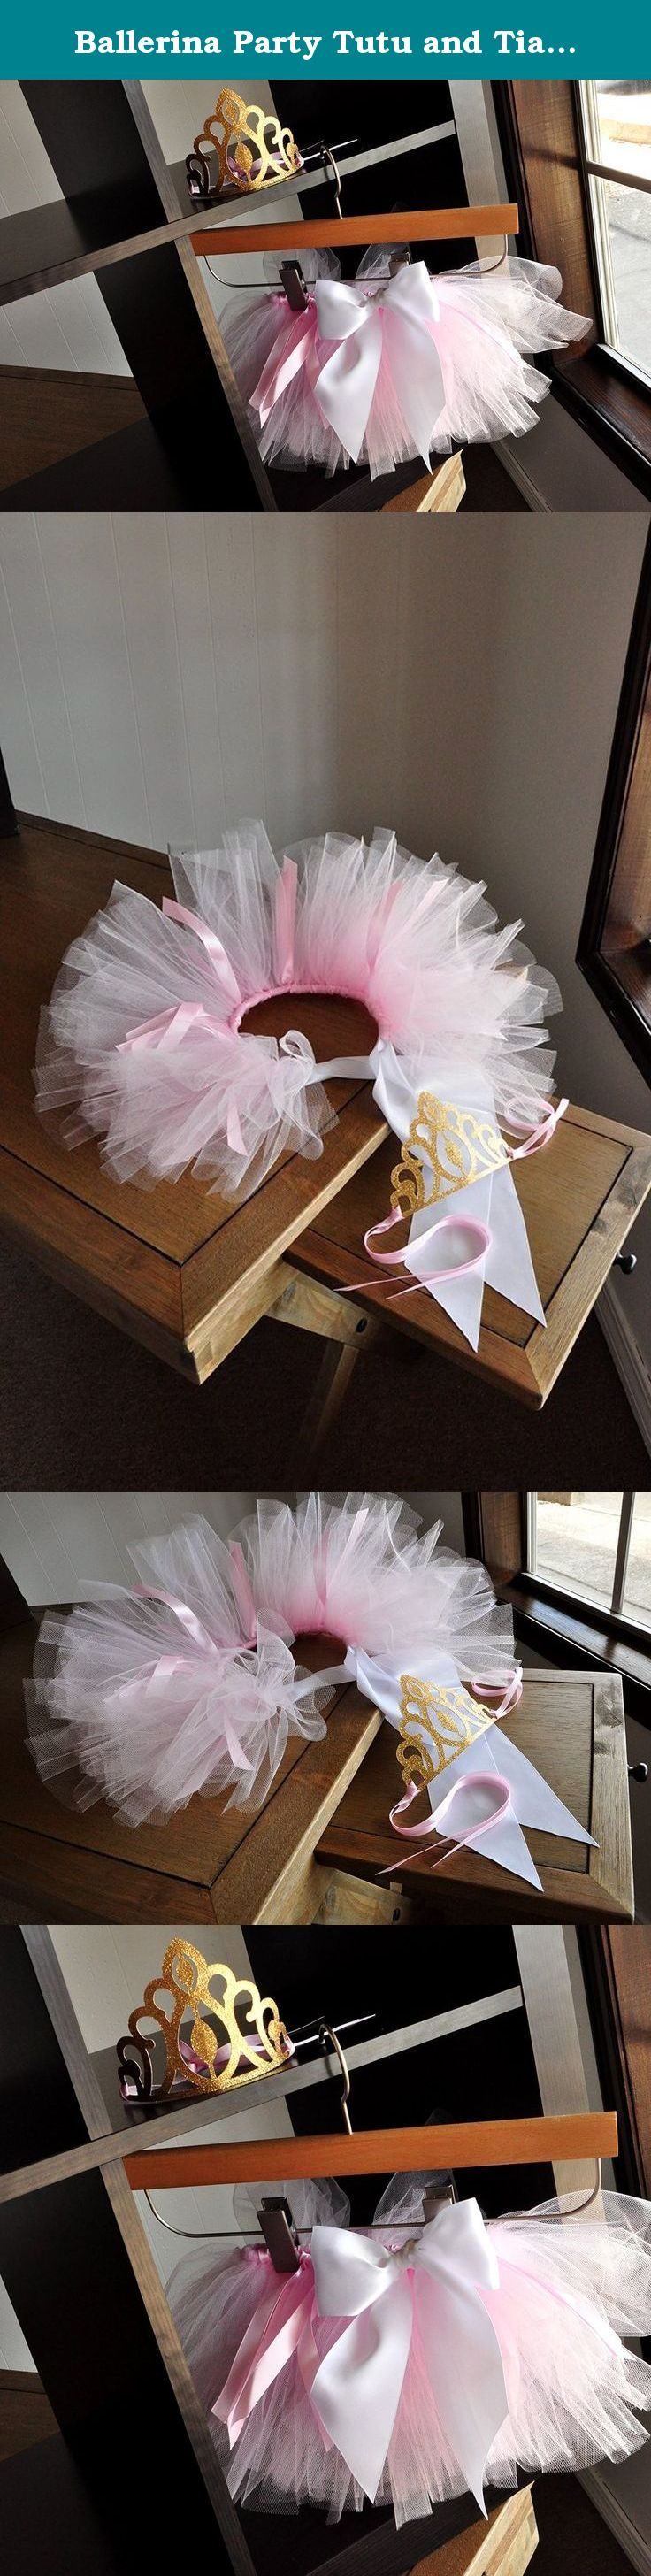 Ballerina Party Tutu and Tiara. Ballerina Party Supplies Gold and Pink. Smash Cake Outfit. Tutu Crown Combo. Our Confetti Momma Ballerina crown and tutu combo is the perfect outfit for your little one's first birthday party or smash cake photoshoot. Your little one will feel like a true ballerina when she adorns herself with this sparkly tiara and pretty tutu. The crown was designed using sturdy gold glitter cardstock and embellished with luxurious baby pink satin ribbon. The tutu is…